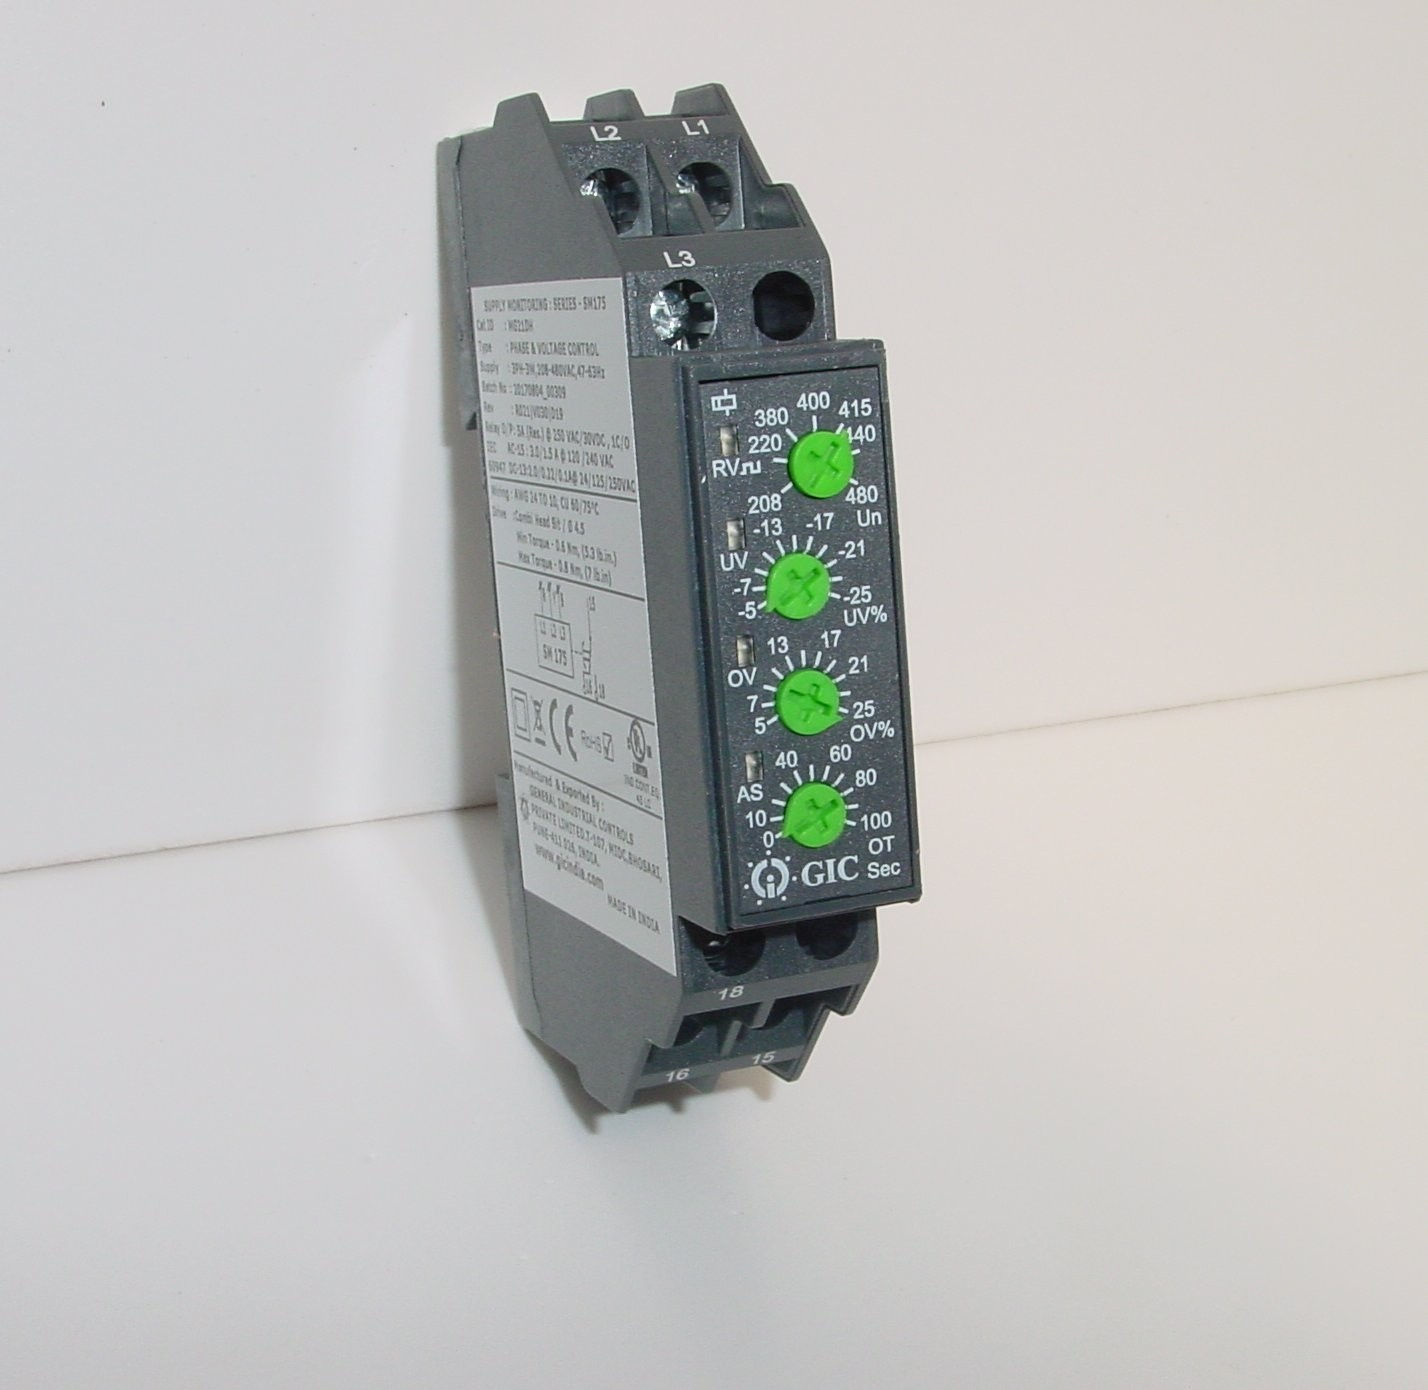 VOLTAGE SENSING RELAY (UVR) 3 Phase 300-003-GIC